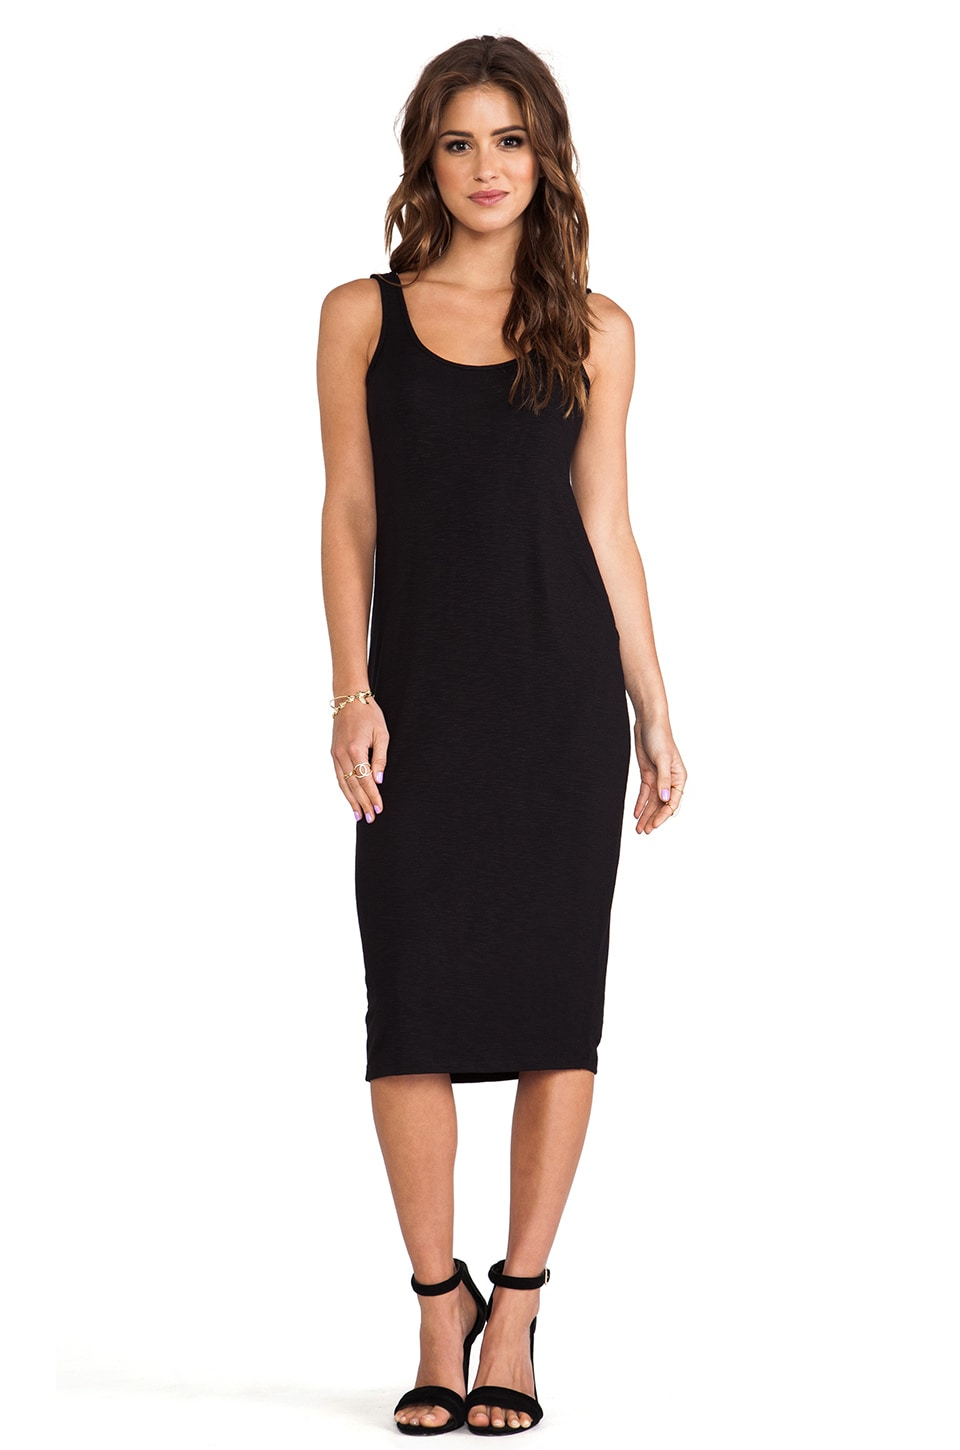 dolan U Back Midi Dress in Black